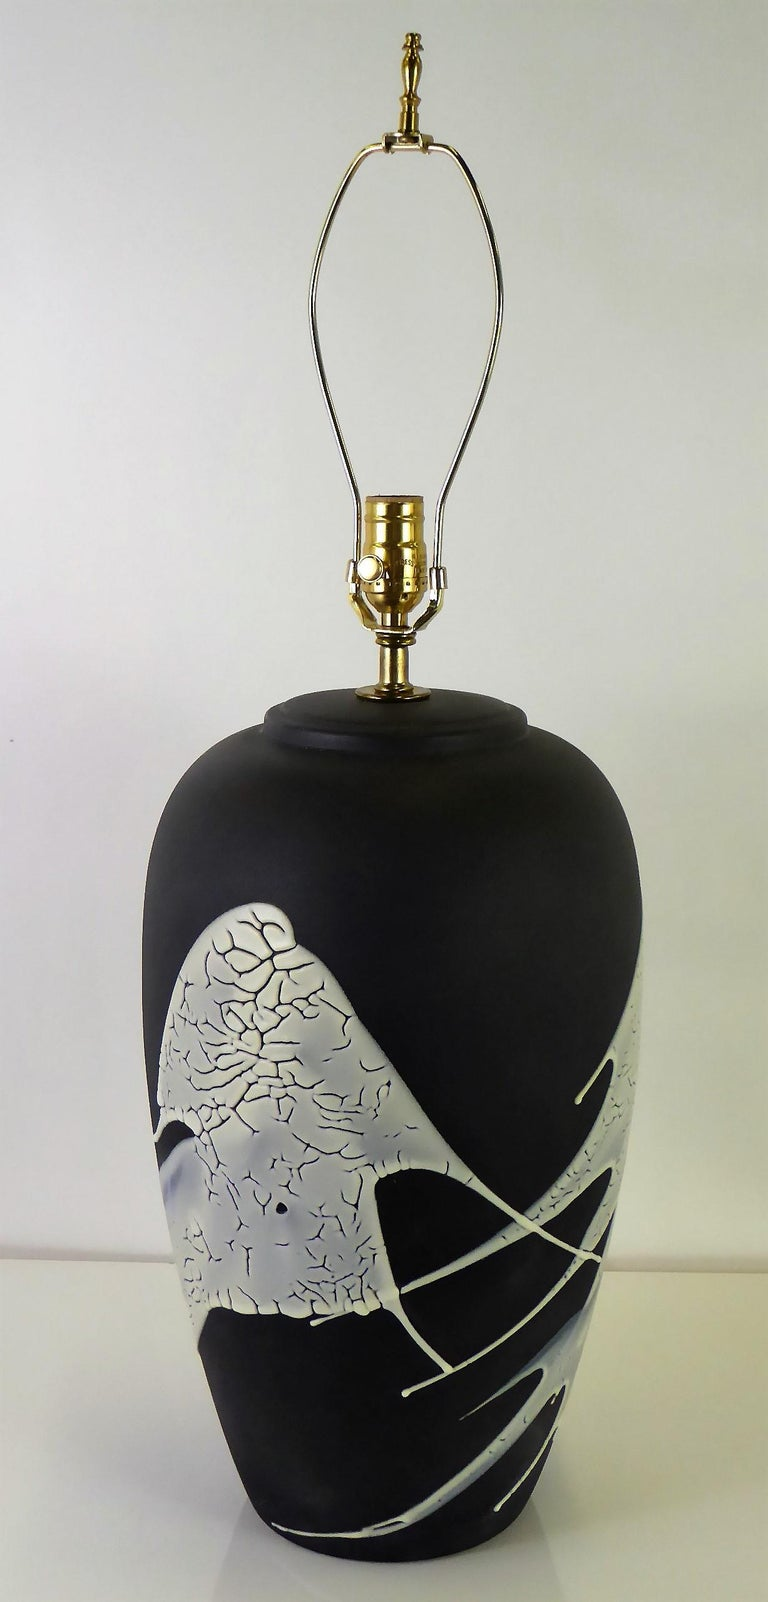 1960s lava glaze ceramic table lamp with a matte black finish and splashes of white lava glaze. An oil jar shape, it has been rewired and with a new brass UL three level socket. Takes medium base bulbs.